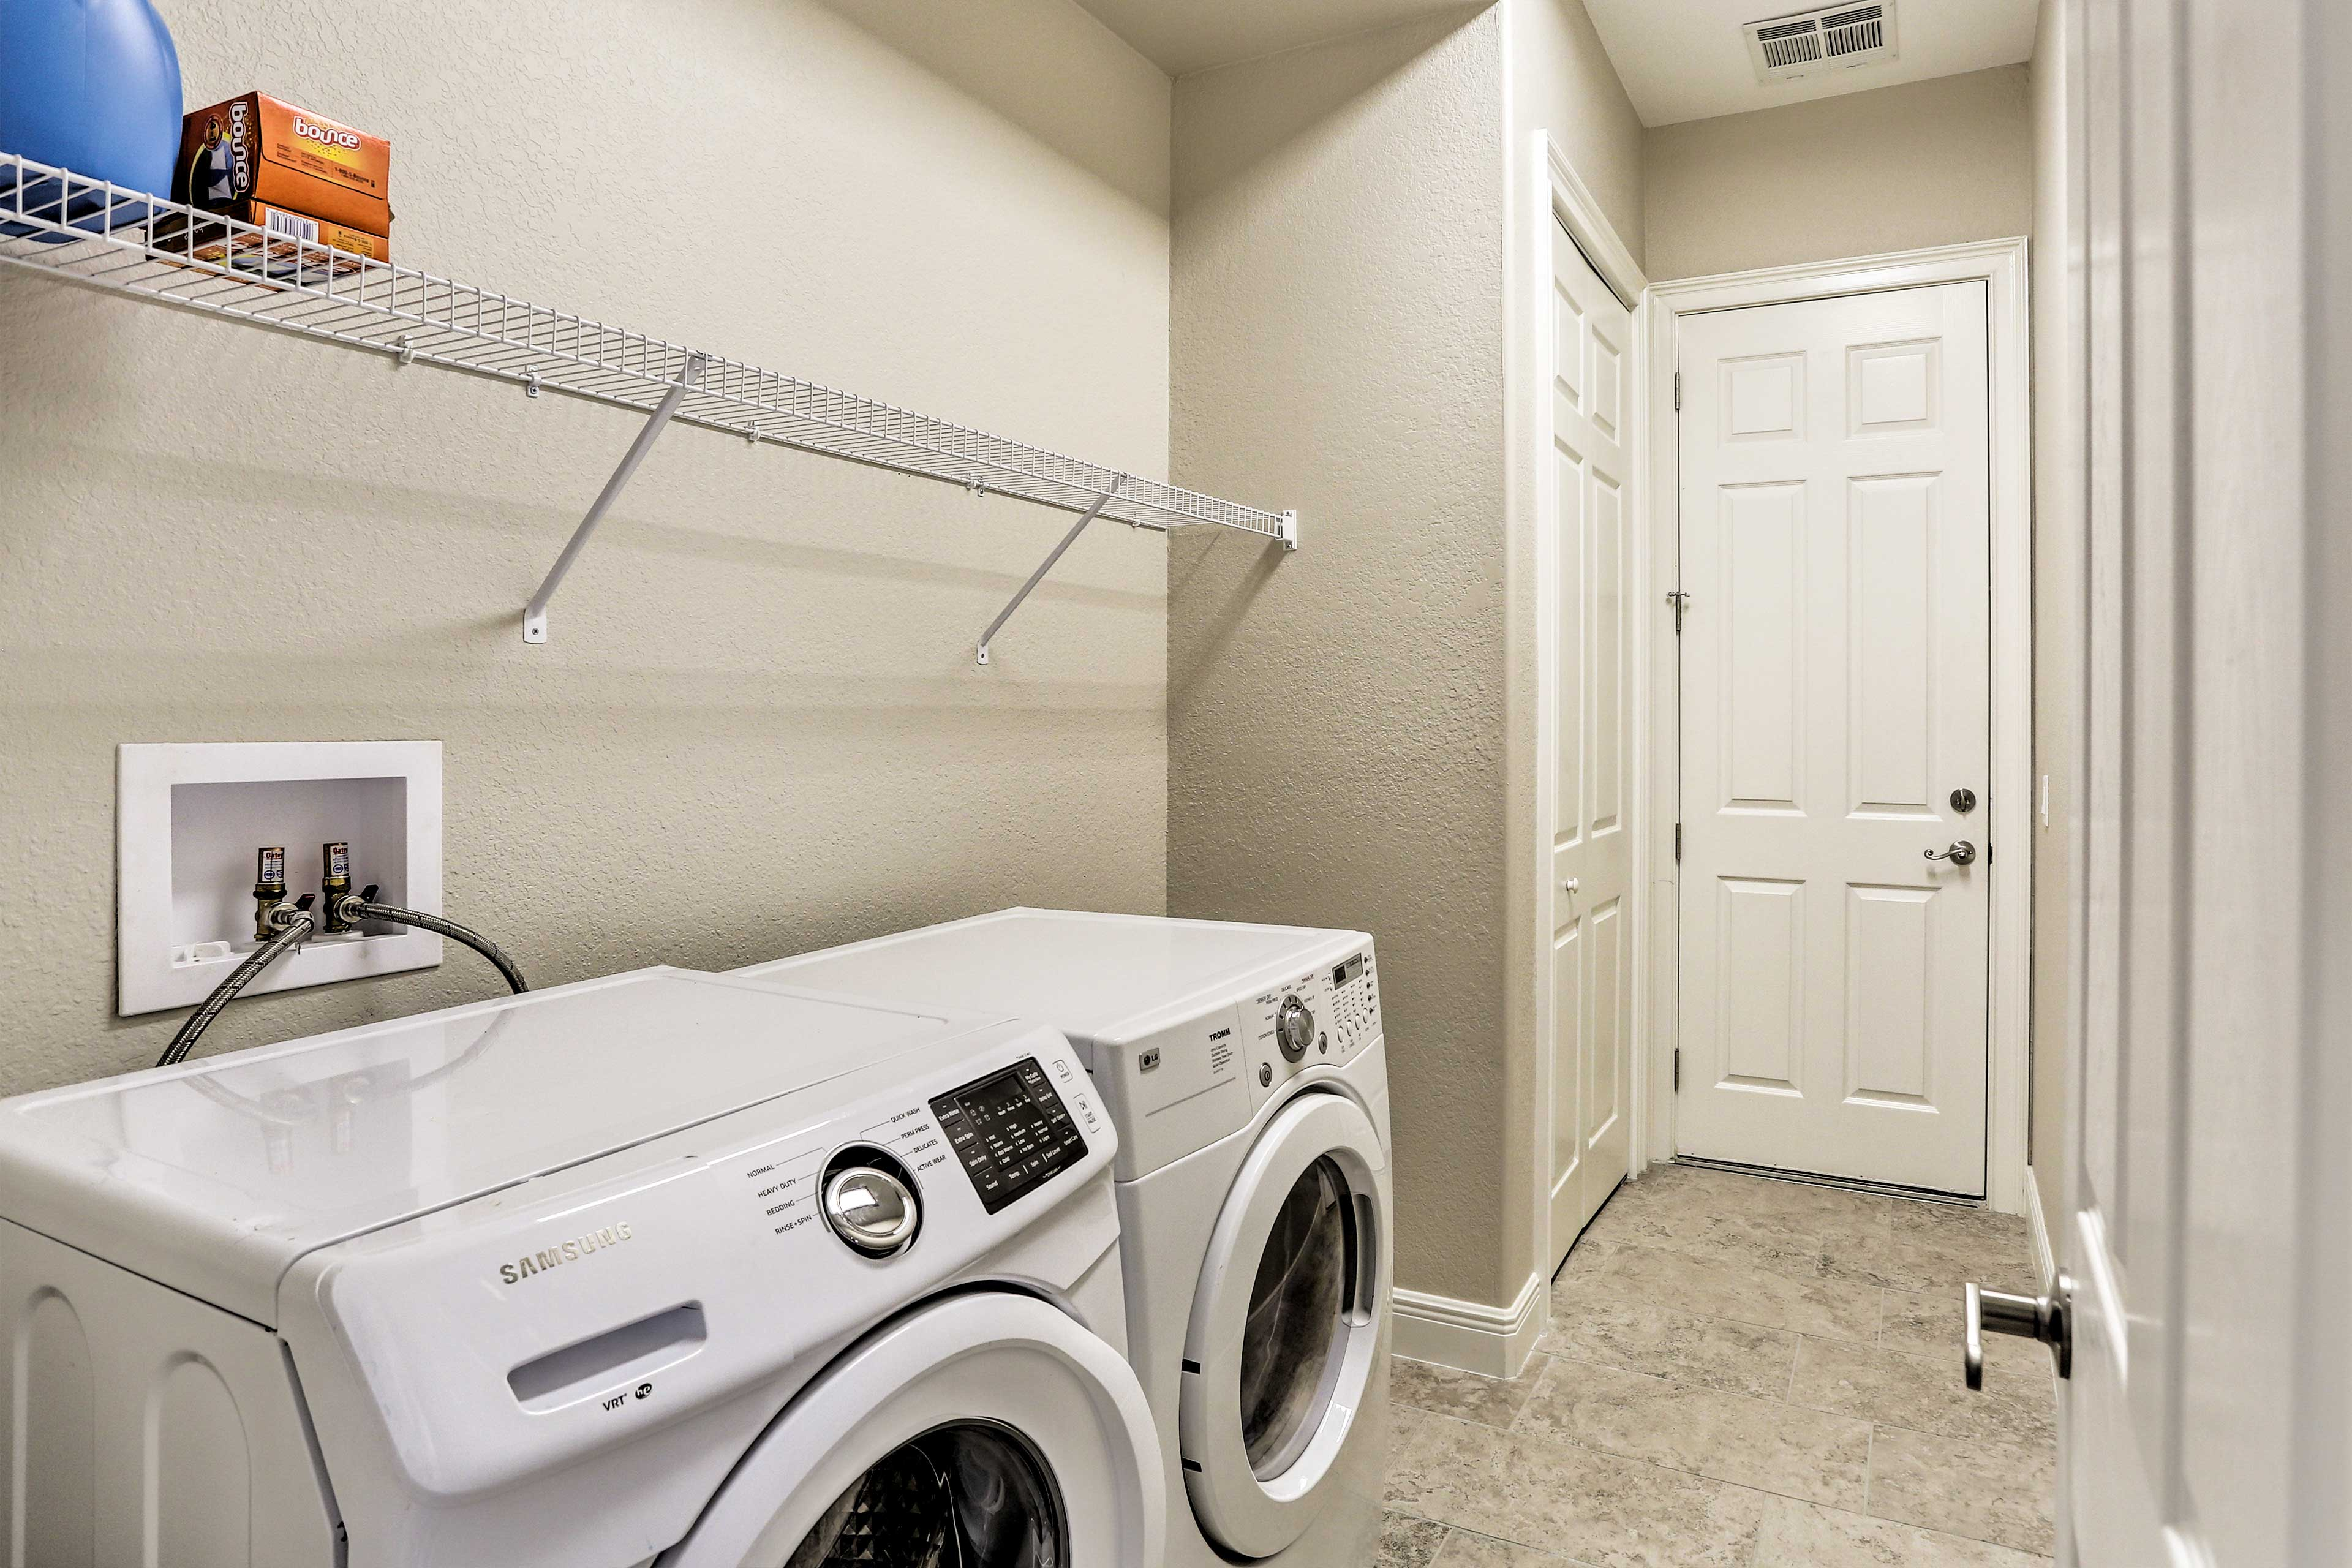 Keep your swimsuits fresh using the in-house laundry machines.